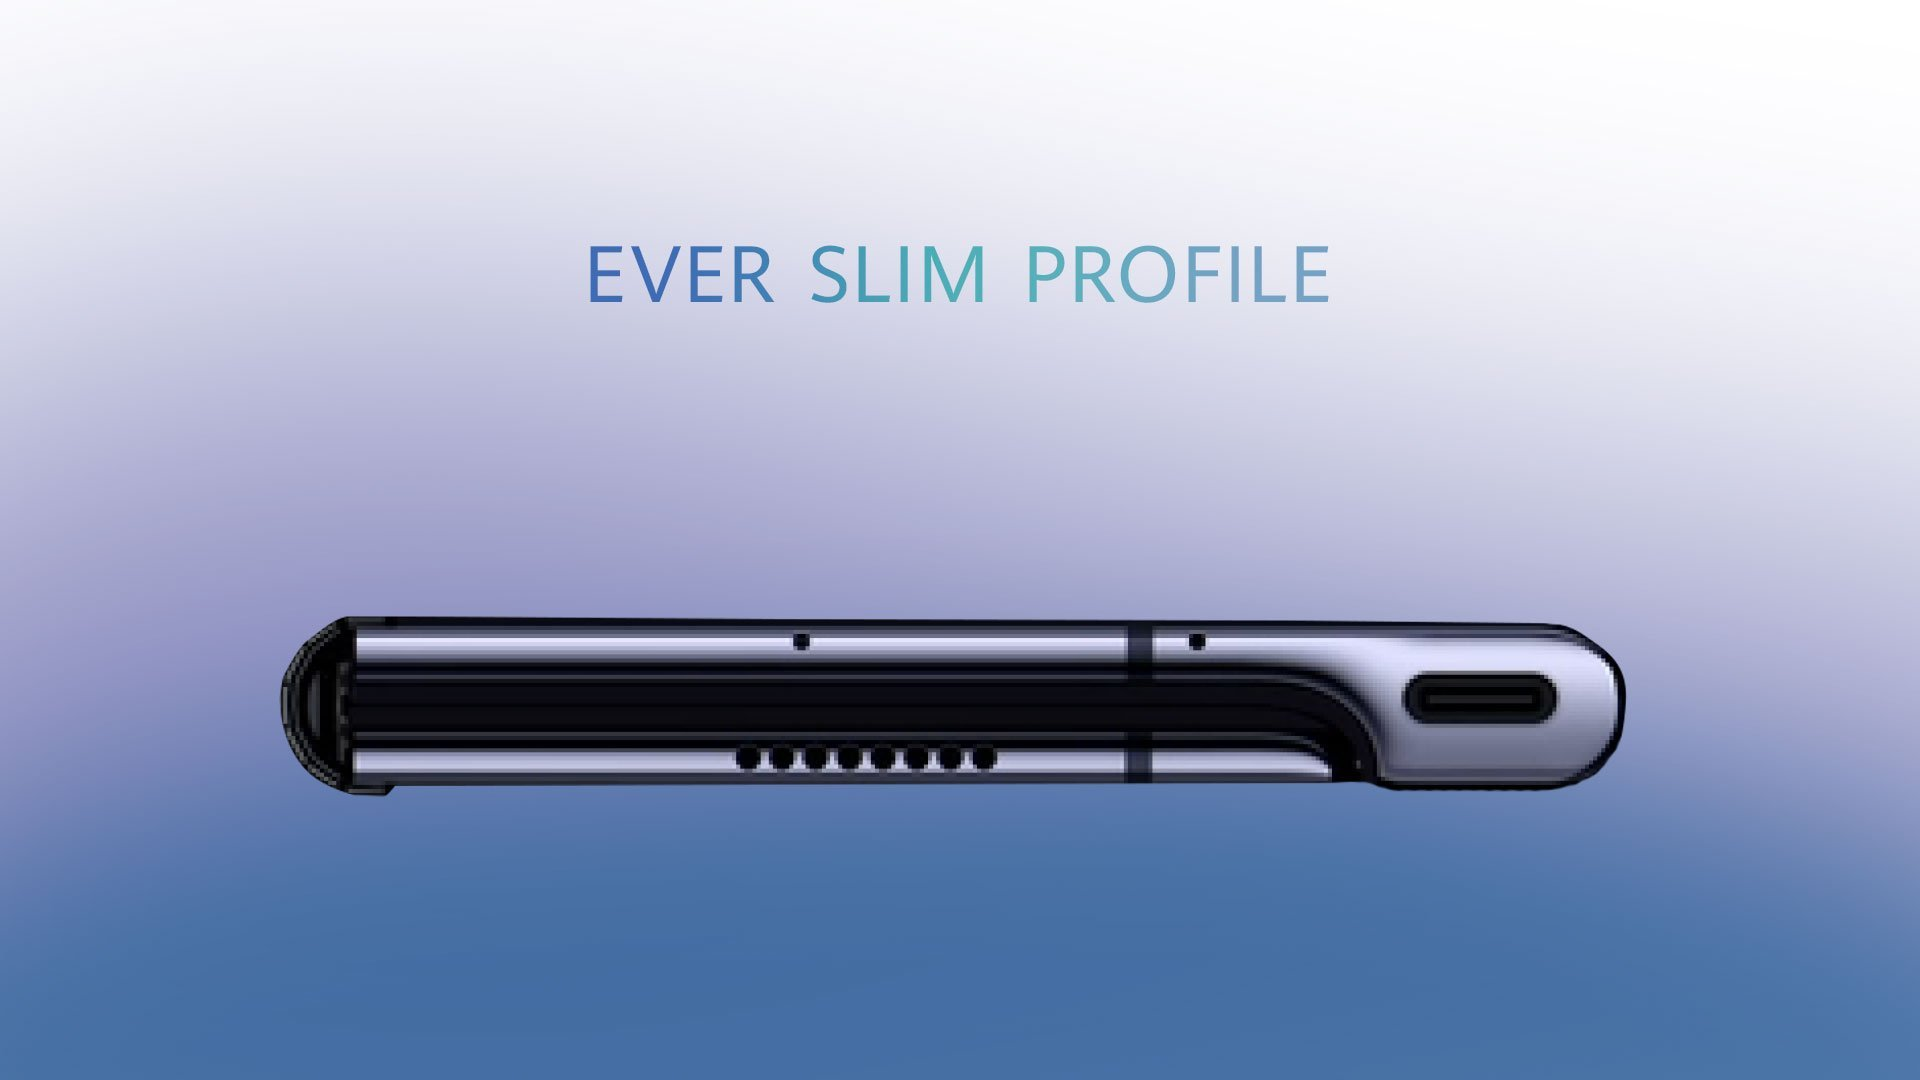 The Huawei Mate X measures 11 millimeters when folded and 5.4 millimeters in tablet mode.